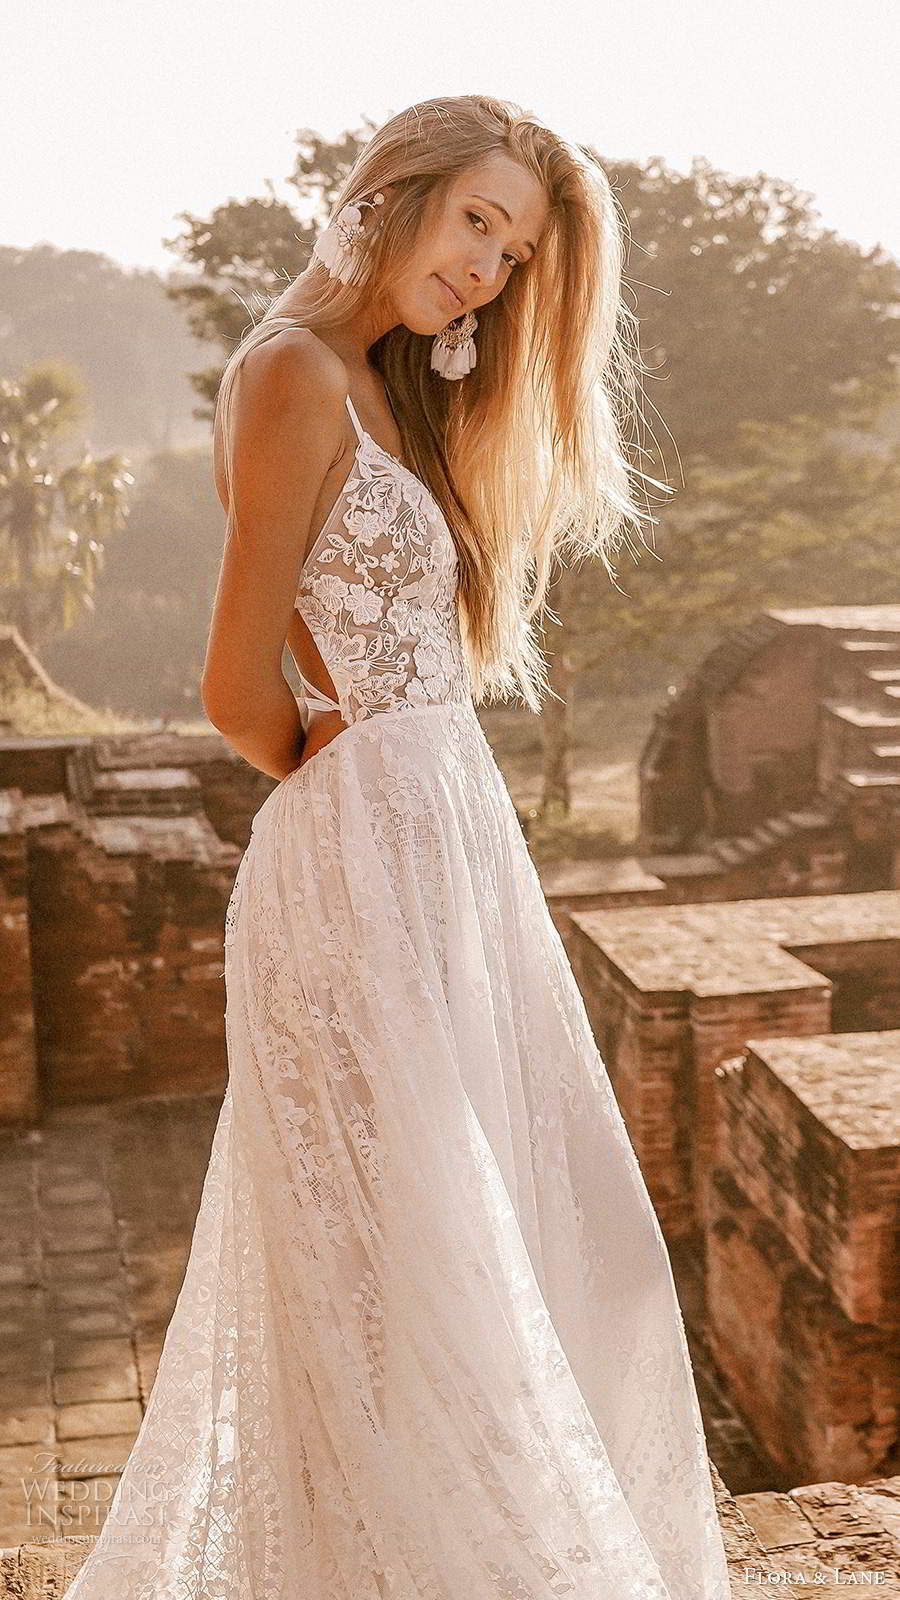 flora and lane 2019 bridal sleeveless straps sweetheart neckline fully embellished lace boho romantic a line ball gown wedding dress open back chapel train (1) zsv